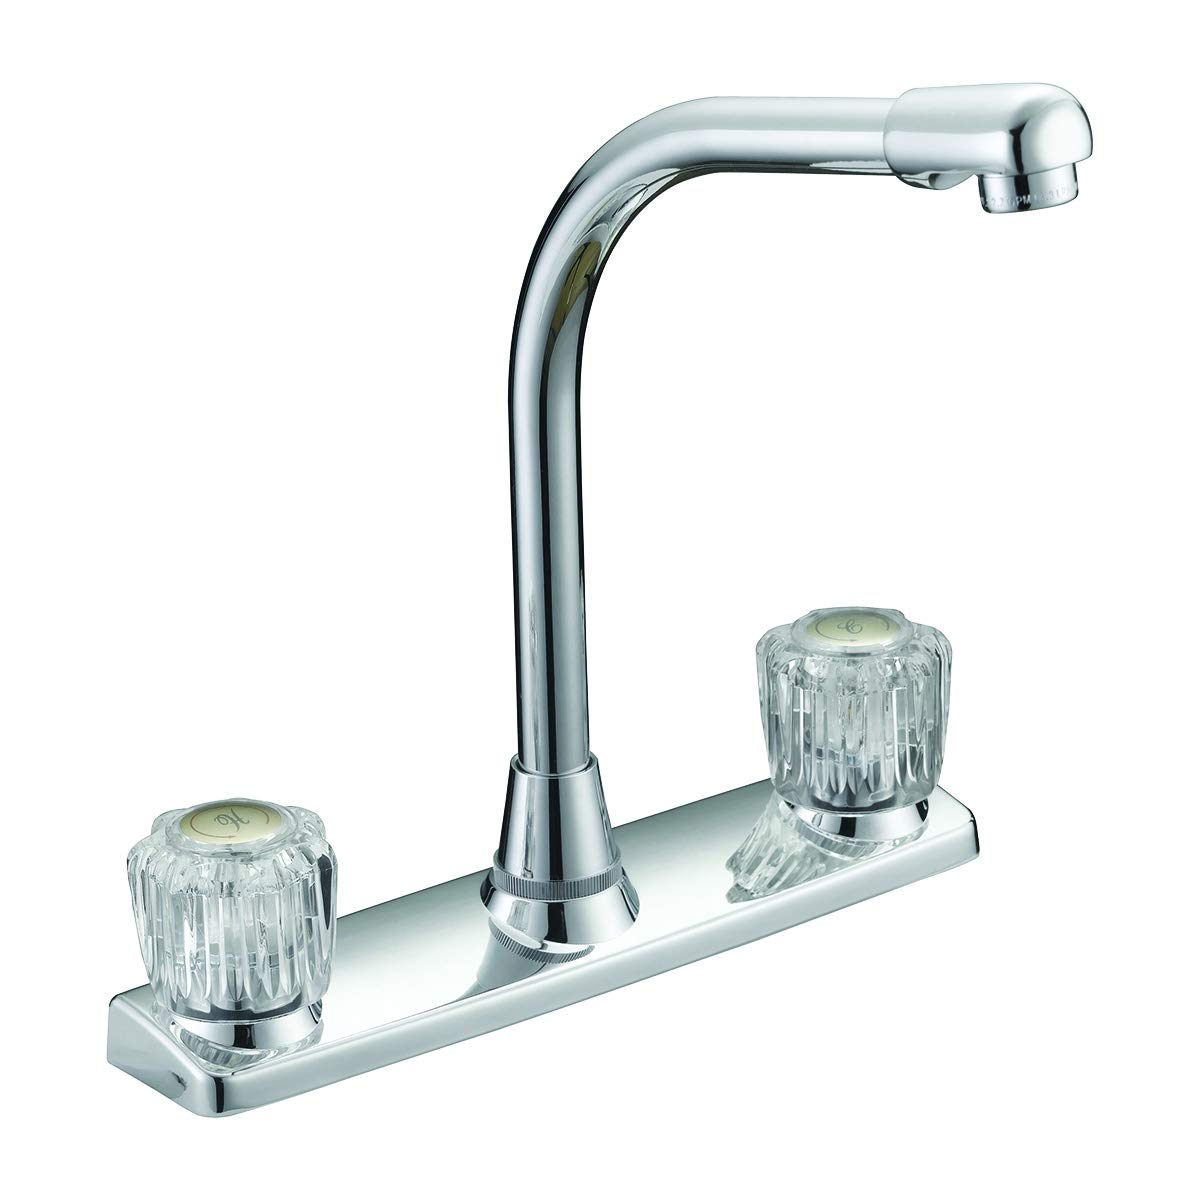 EZ-FLO 10178LF High-Rise Kitchen Washerless Faucet